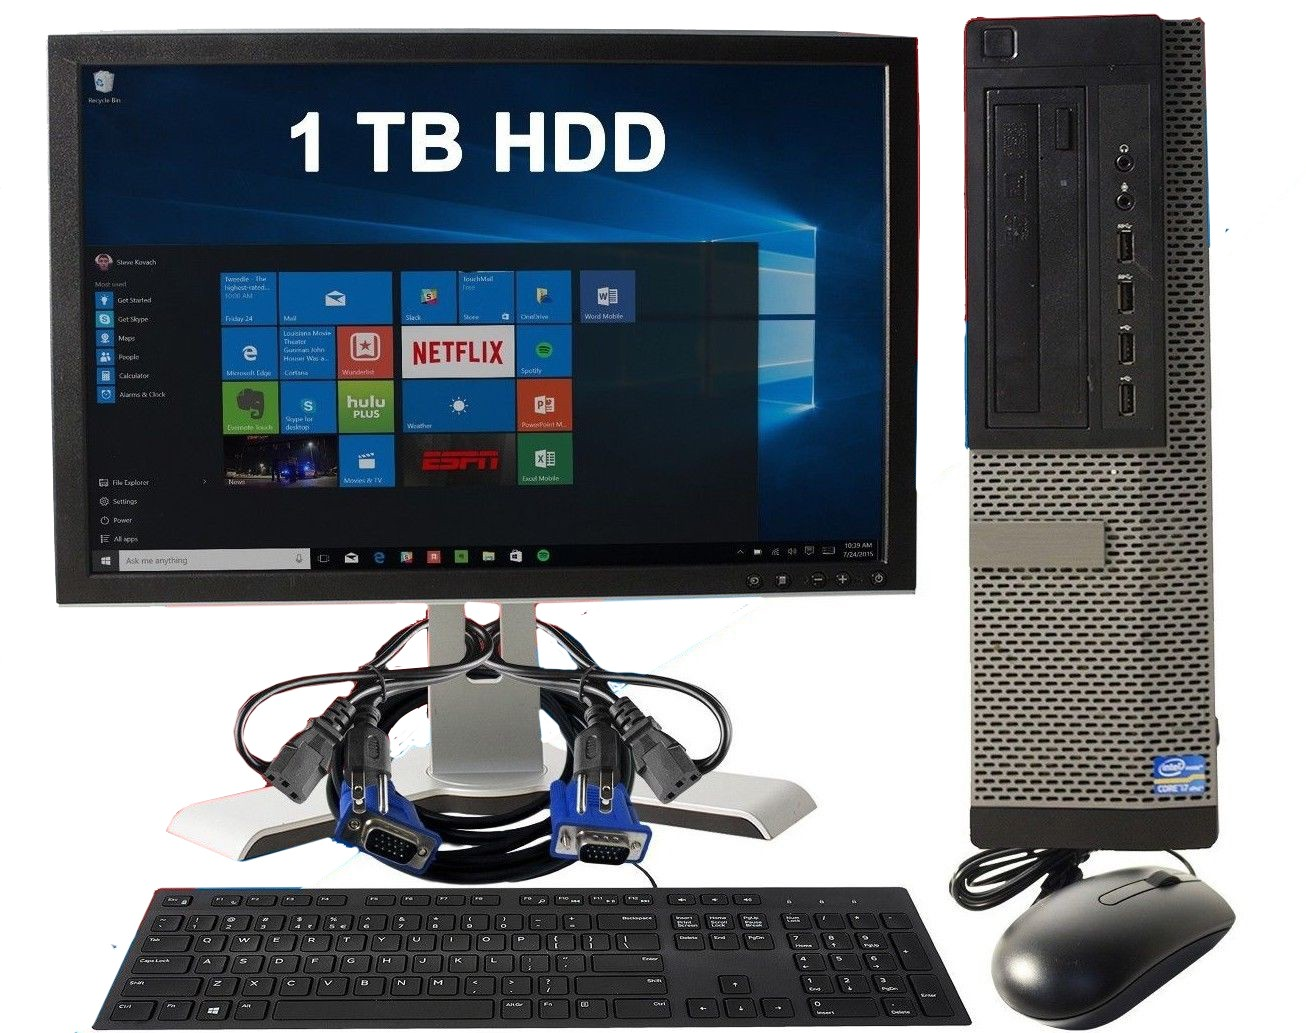 DELL-OPT-9010-DT-BUNDLE-Refurbished Dell Optiplex 9010 DT Bundle i7 8GB RAM 1TB HDD With Keyboard, Mouse, Monitor-image